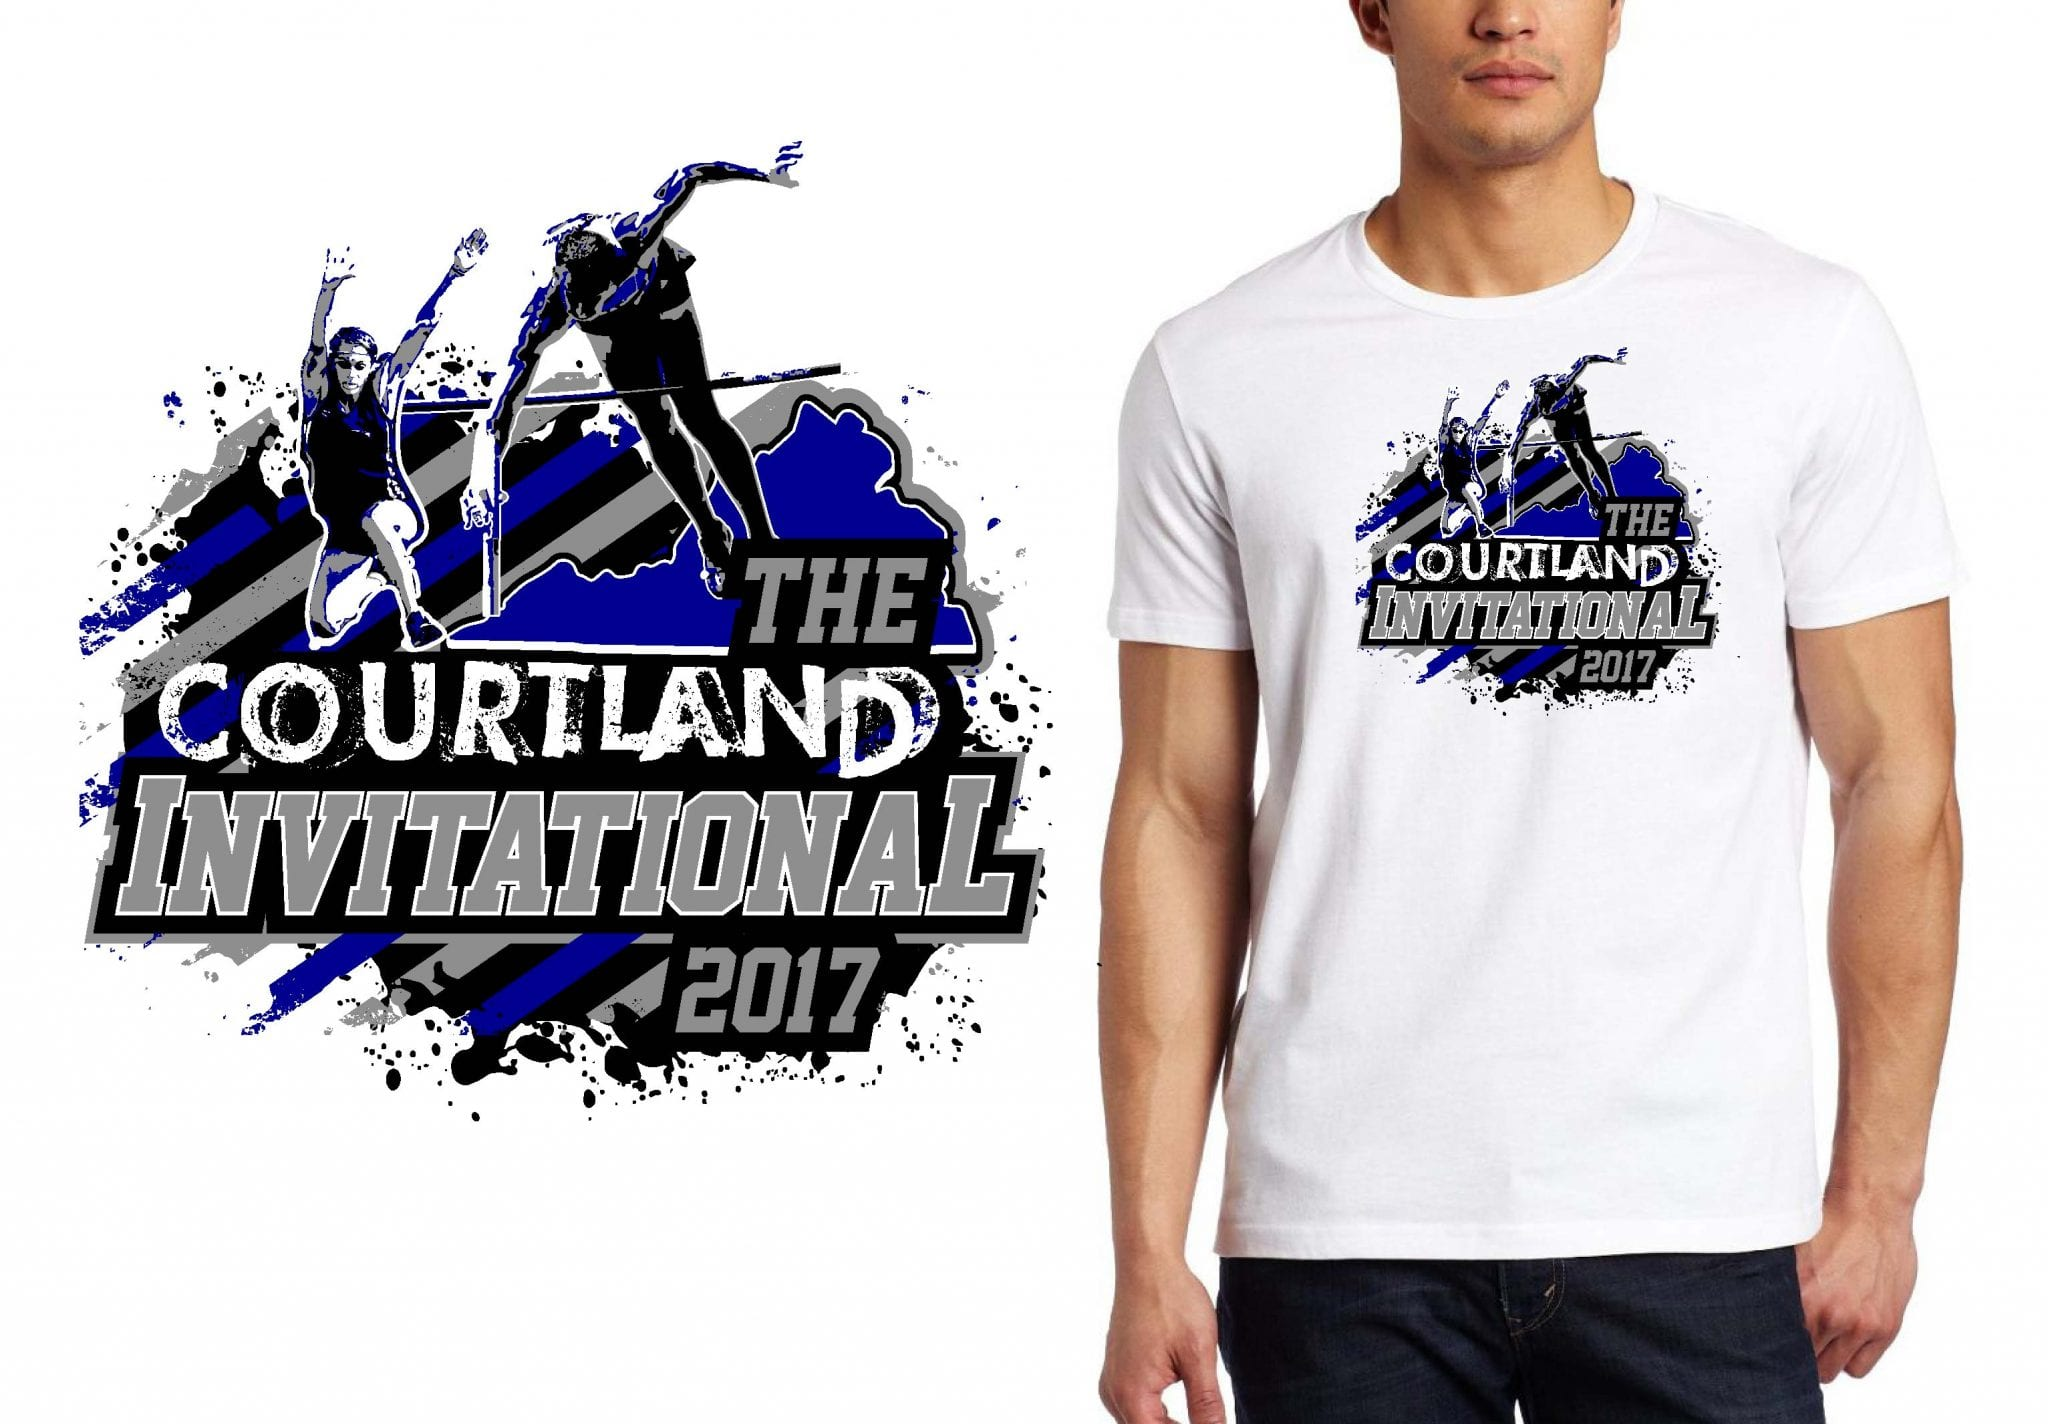 TRACK AND FIELD T SHIRT LOGO DESIGN The Courtland BY UrArtStudio